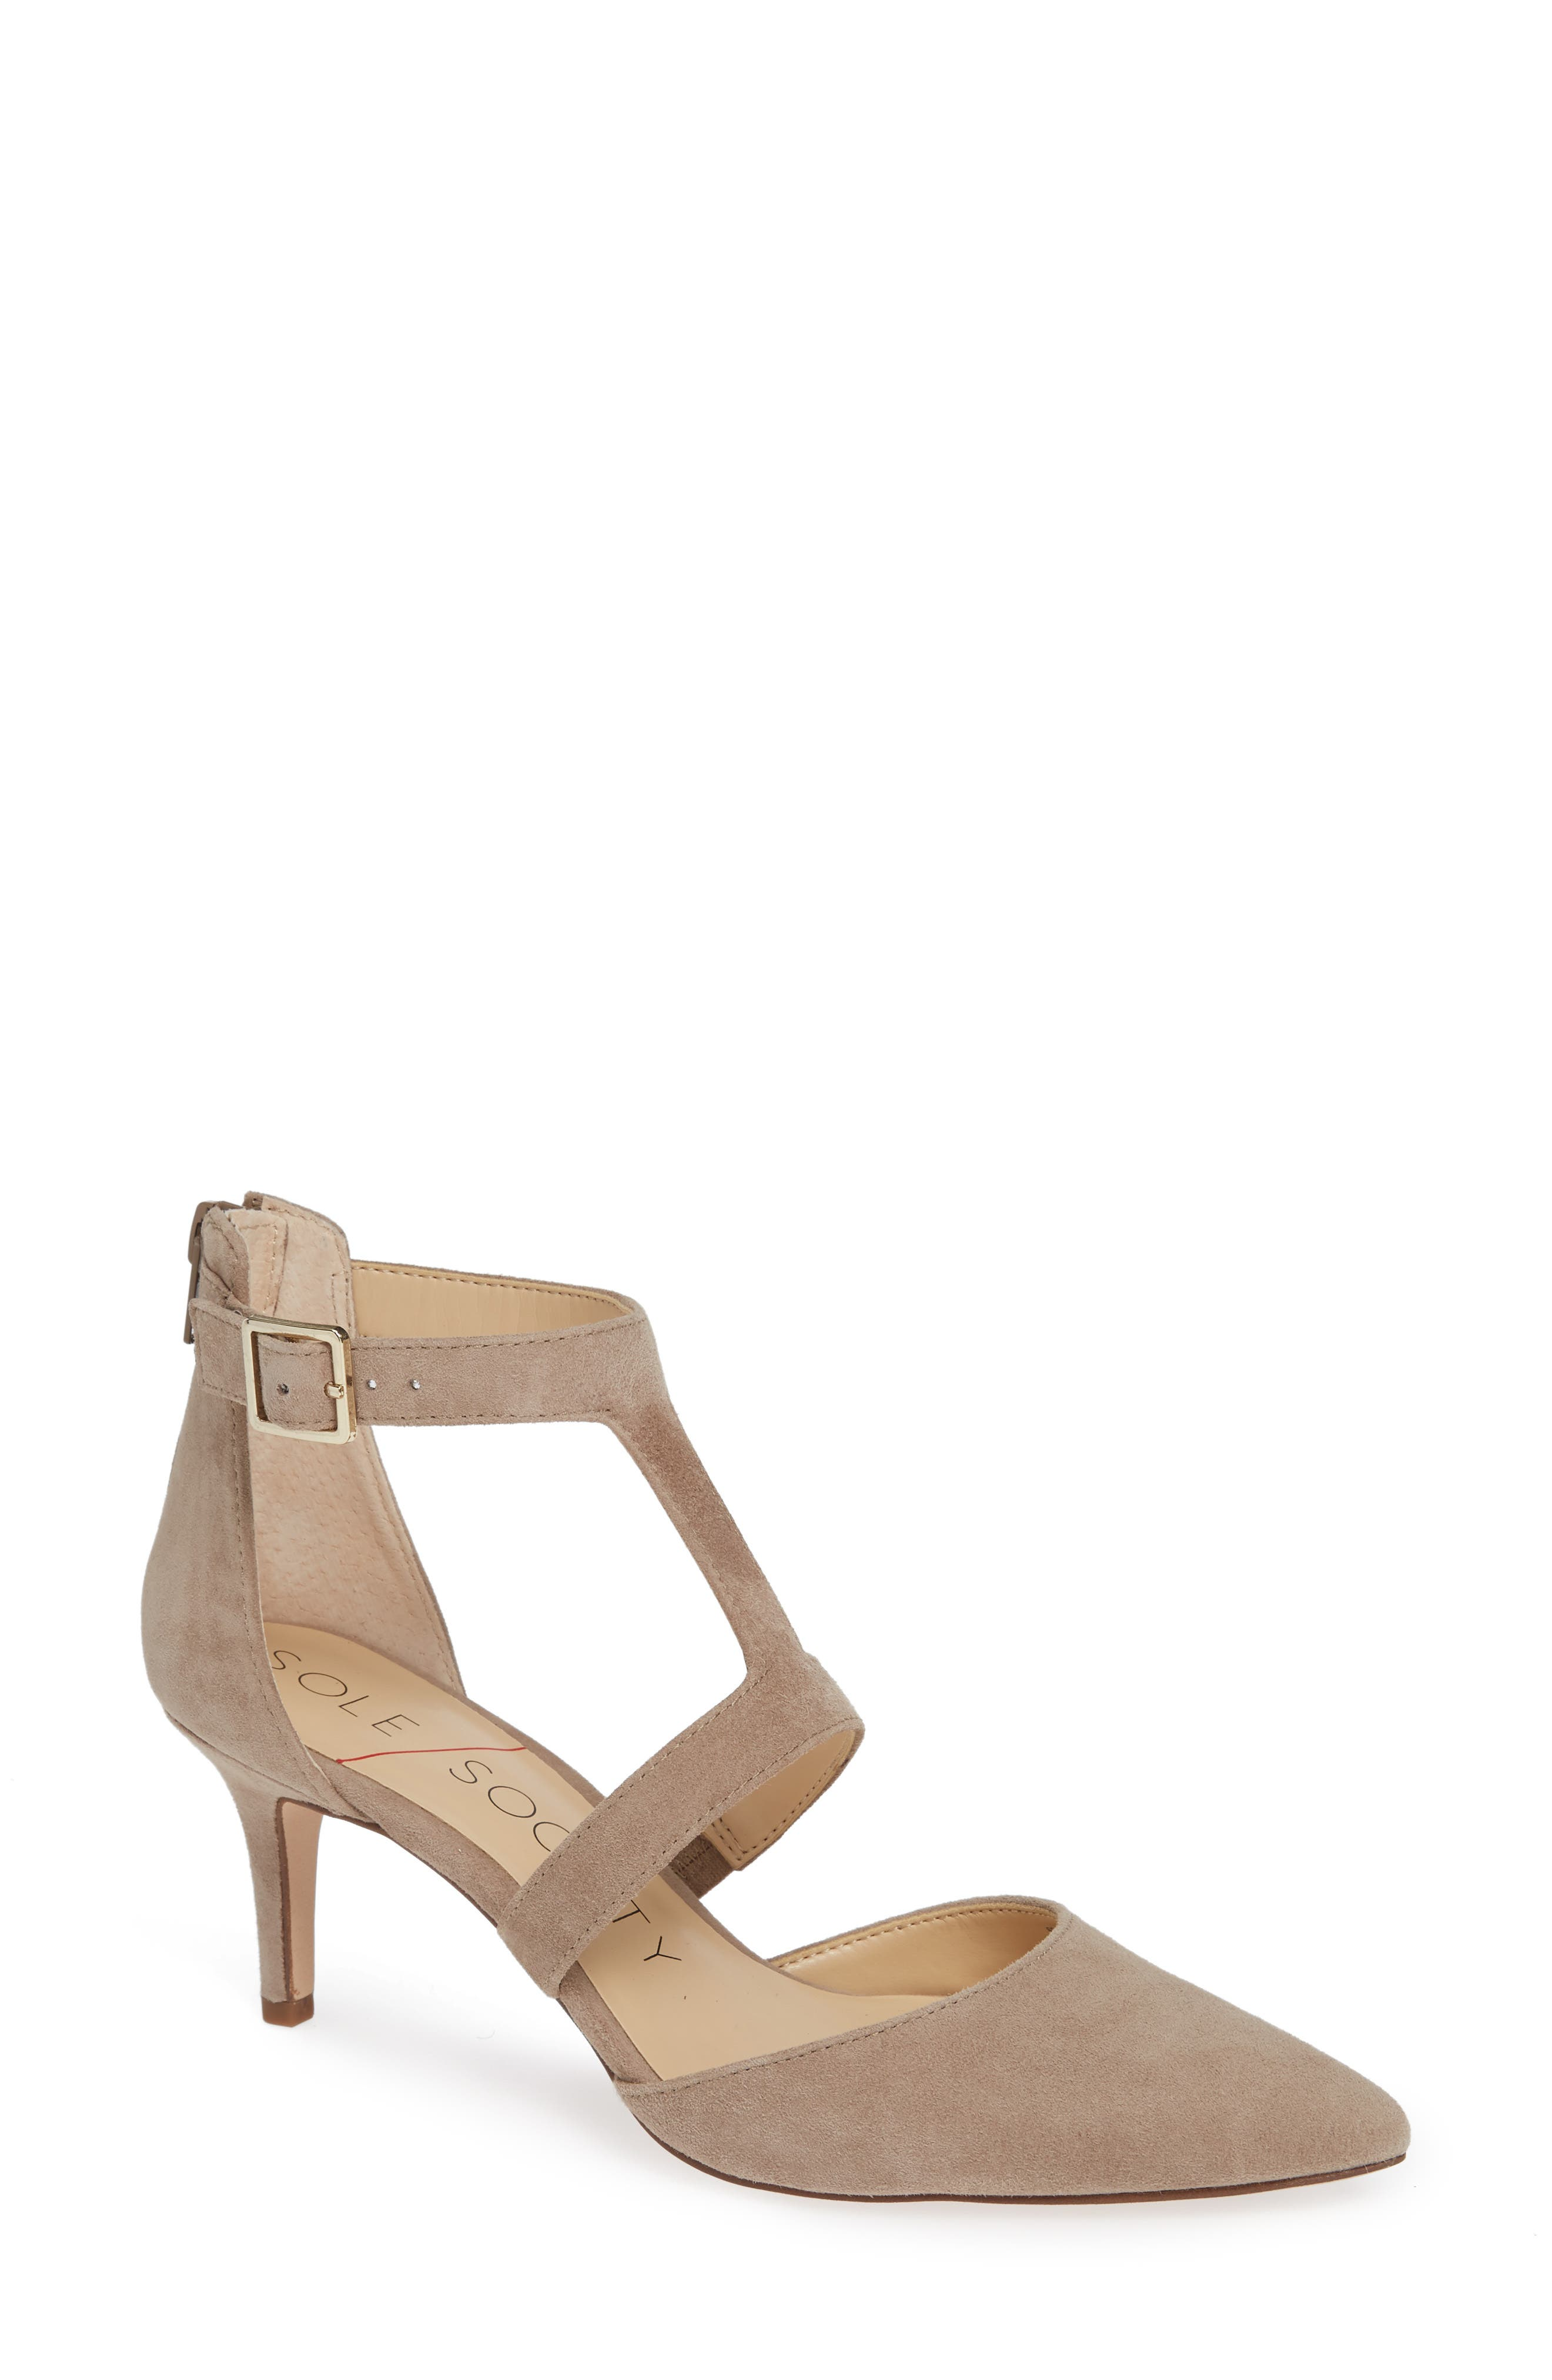 SOLE SOCIETY, Edelyn Pump, Main thumbnail 1, color, FALL TAUPE SUEDE